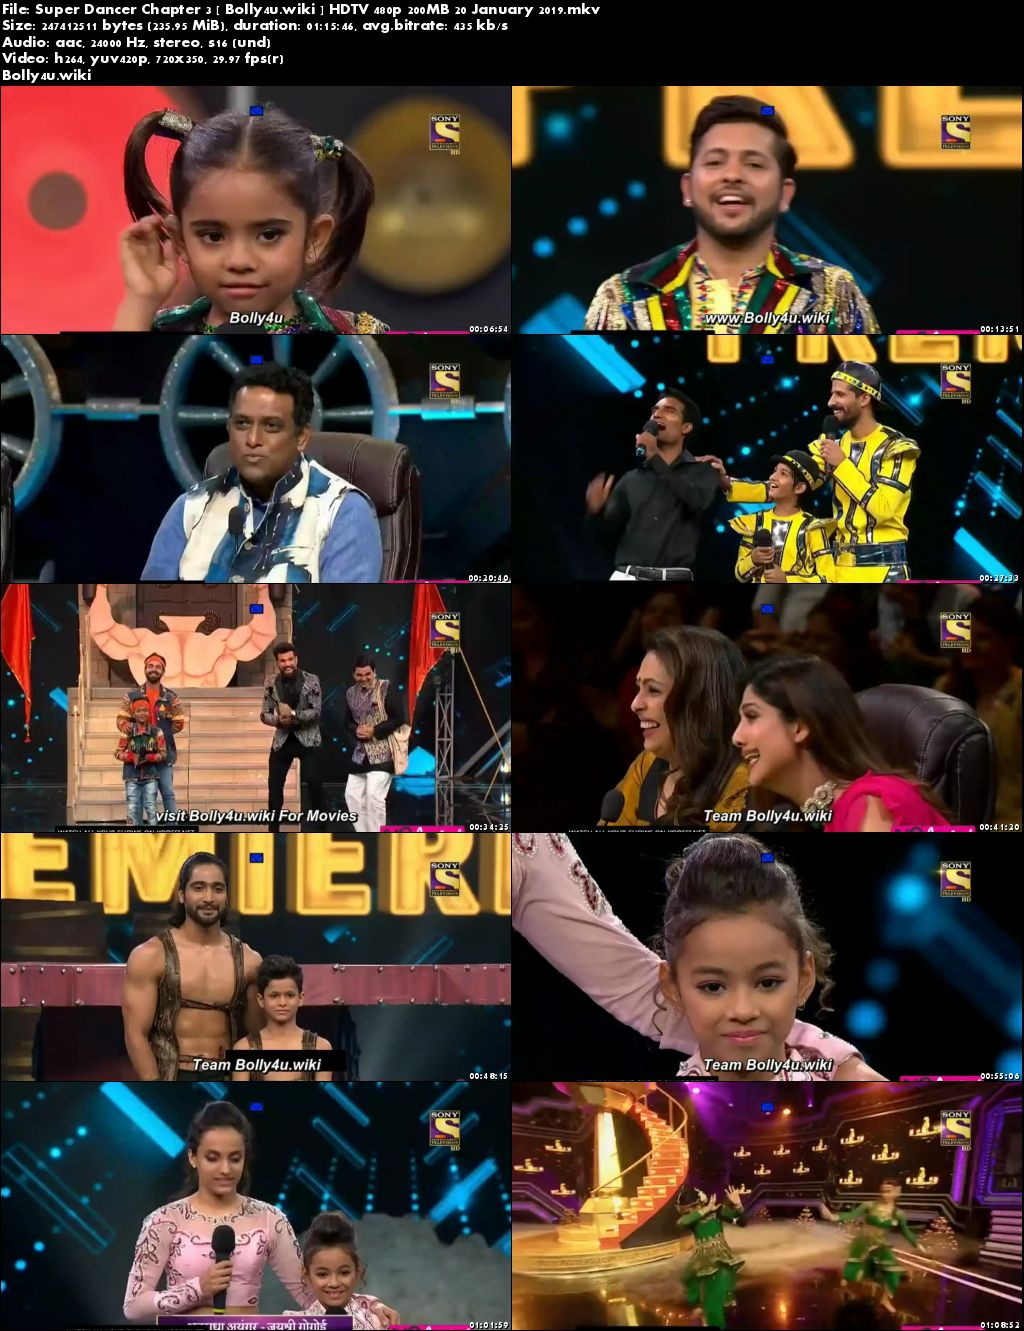 Super Dancer Chapter 3 HDTV 480p 200MB 20 January 2019 Download